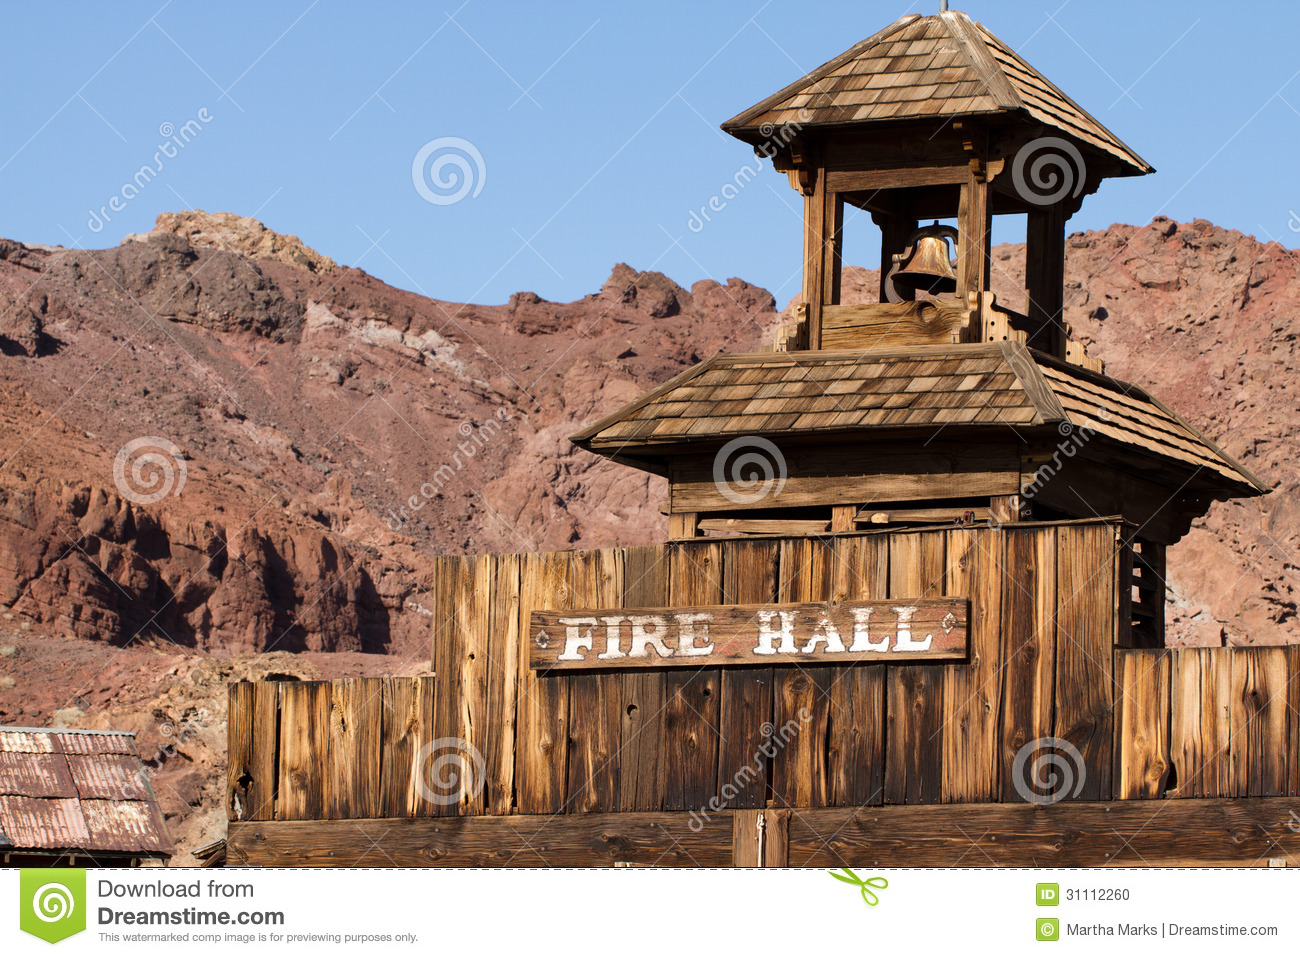 Calico Ghost Town Stock Photo.